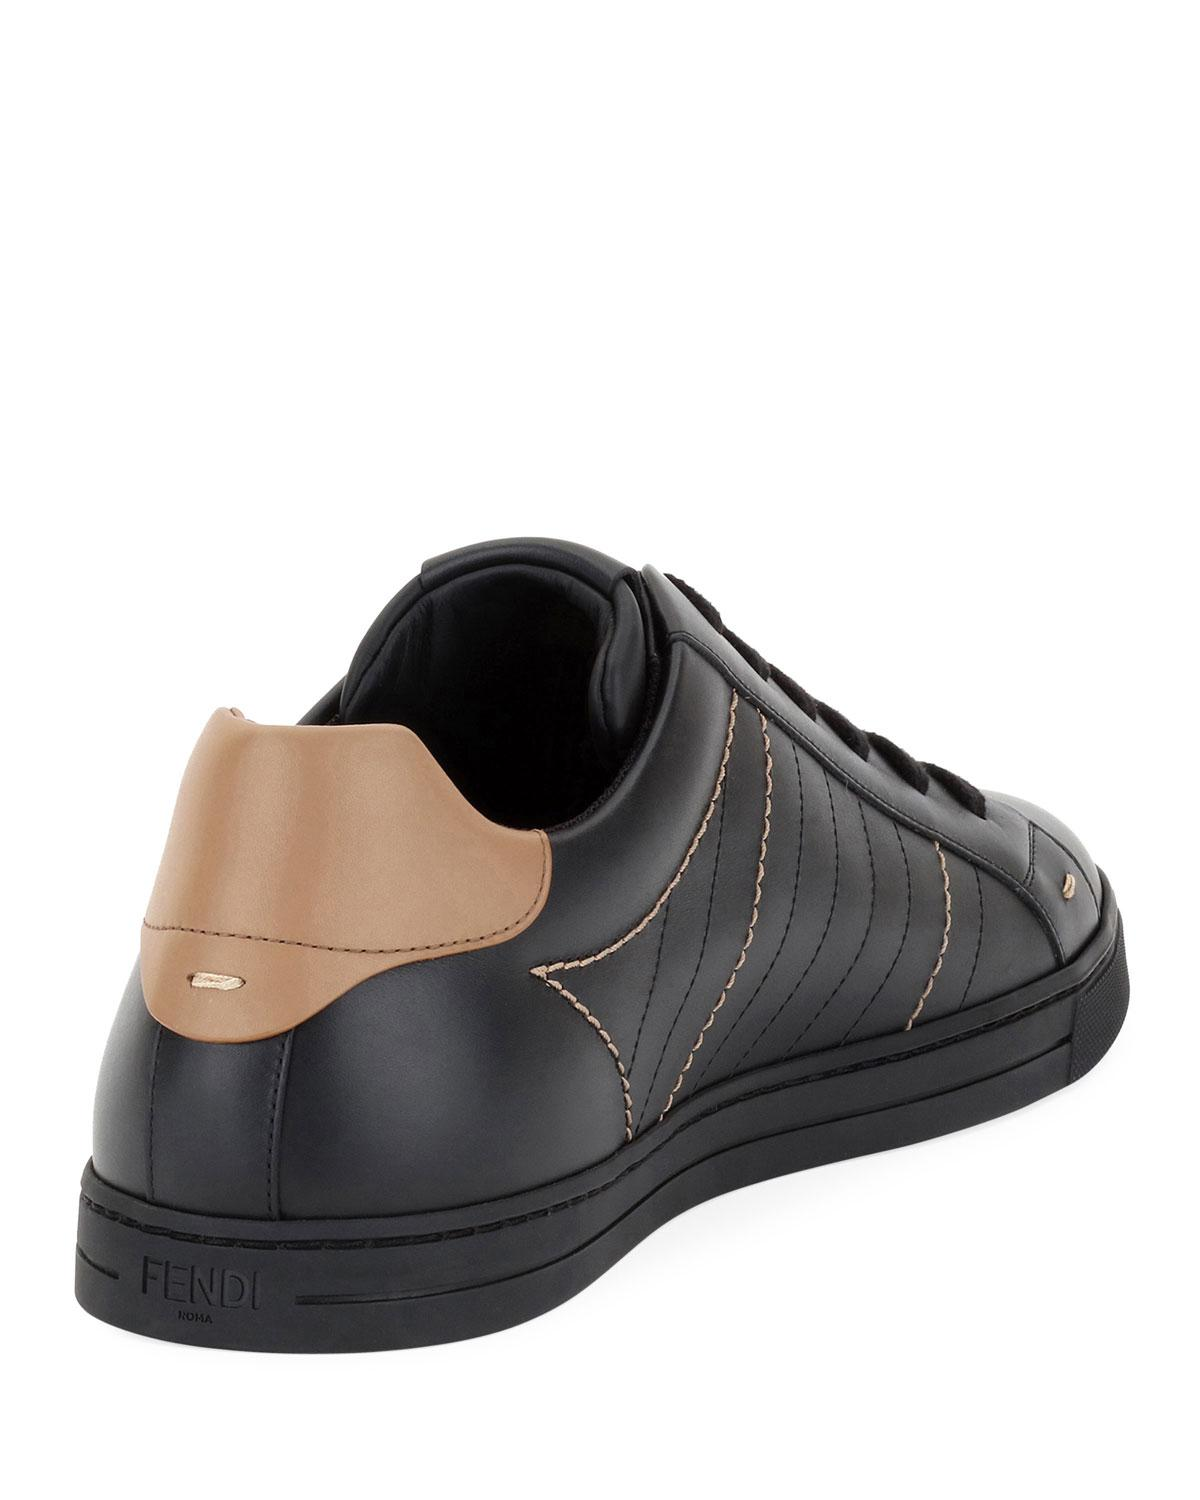 2a64cc85 Fendi Black Men's Ff Embroidered Leather Low-top Sneakers for men